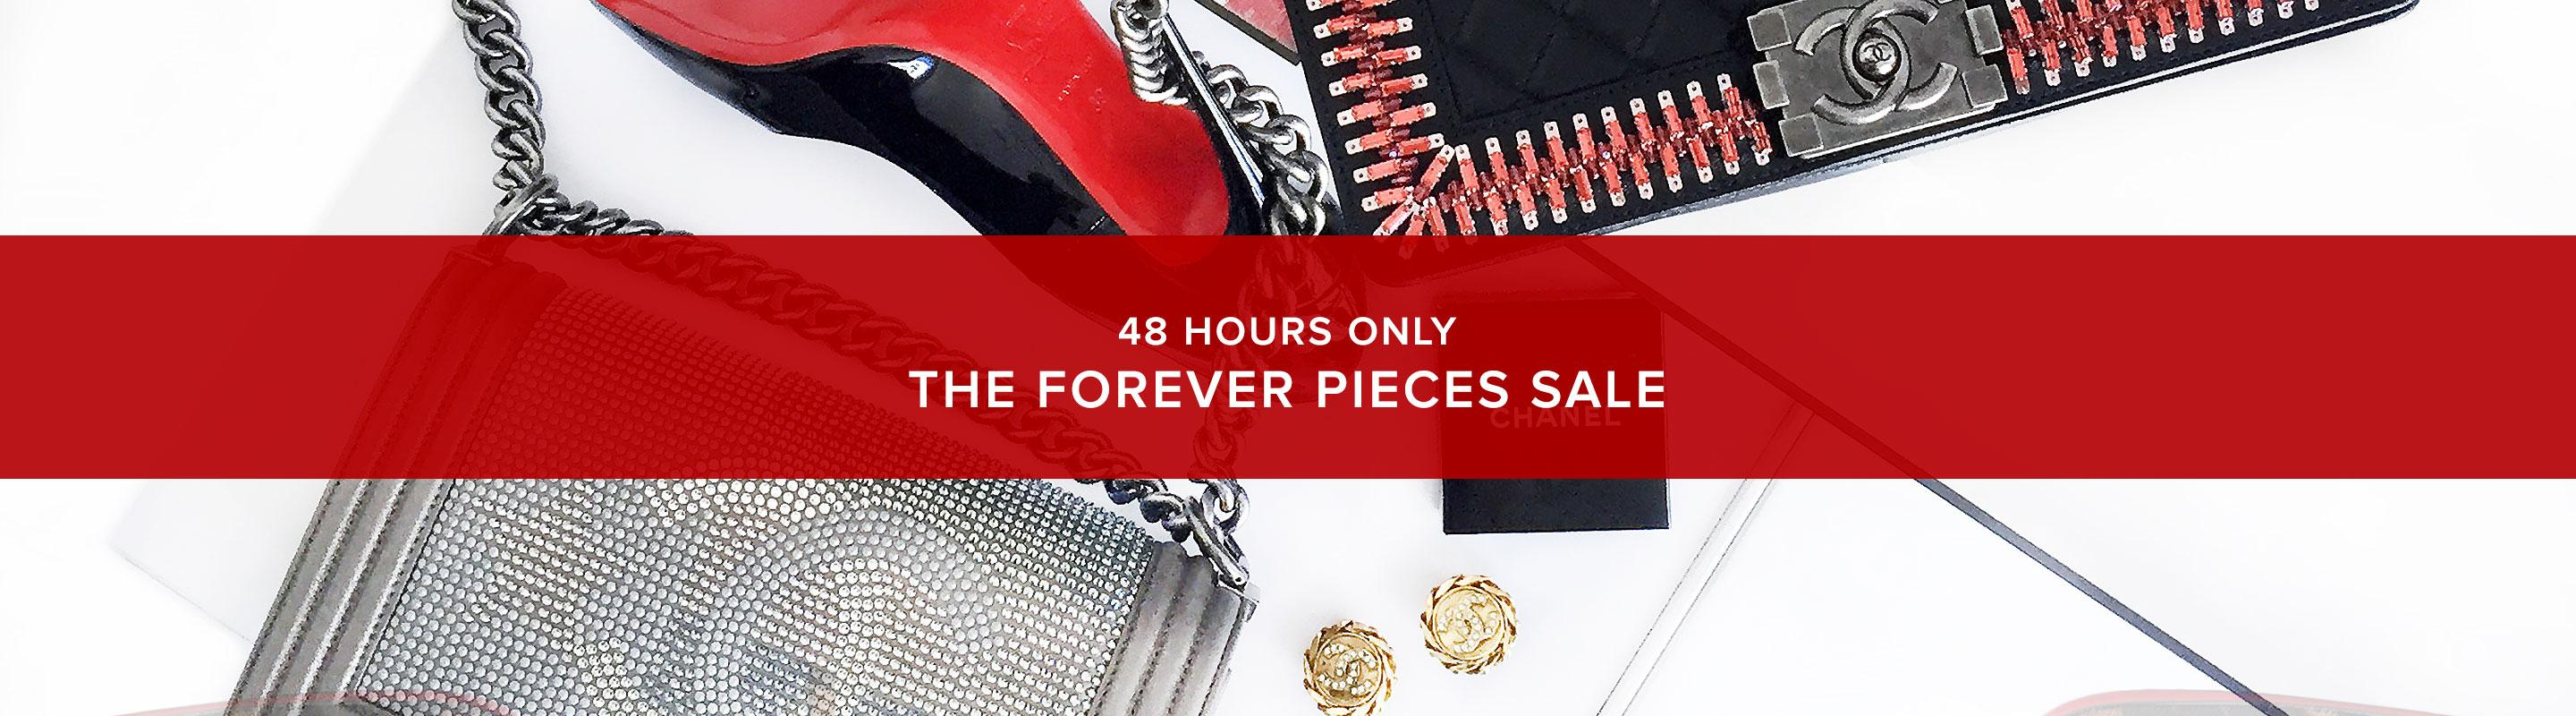 The Forever Pieces Sale